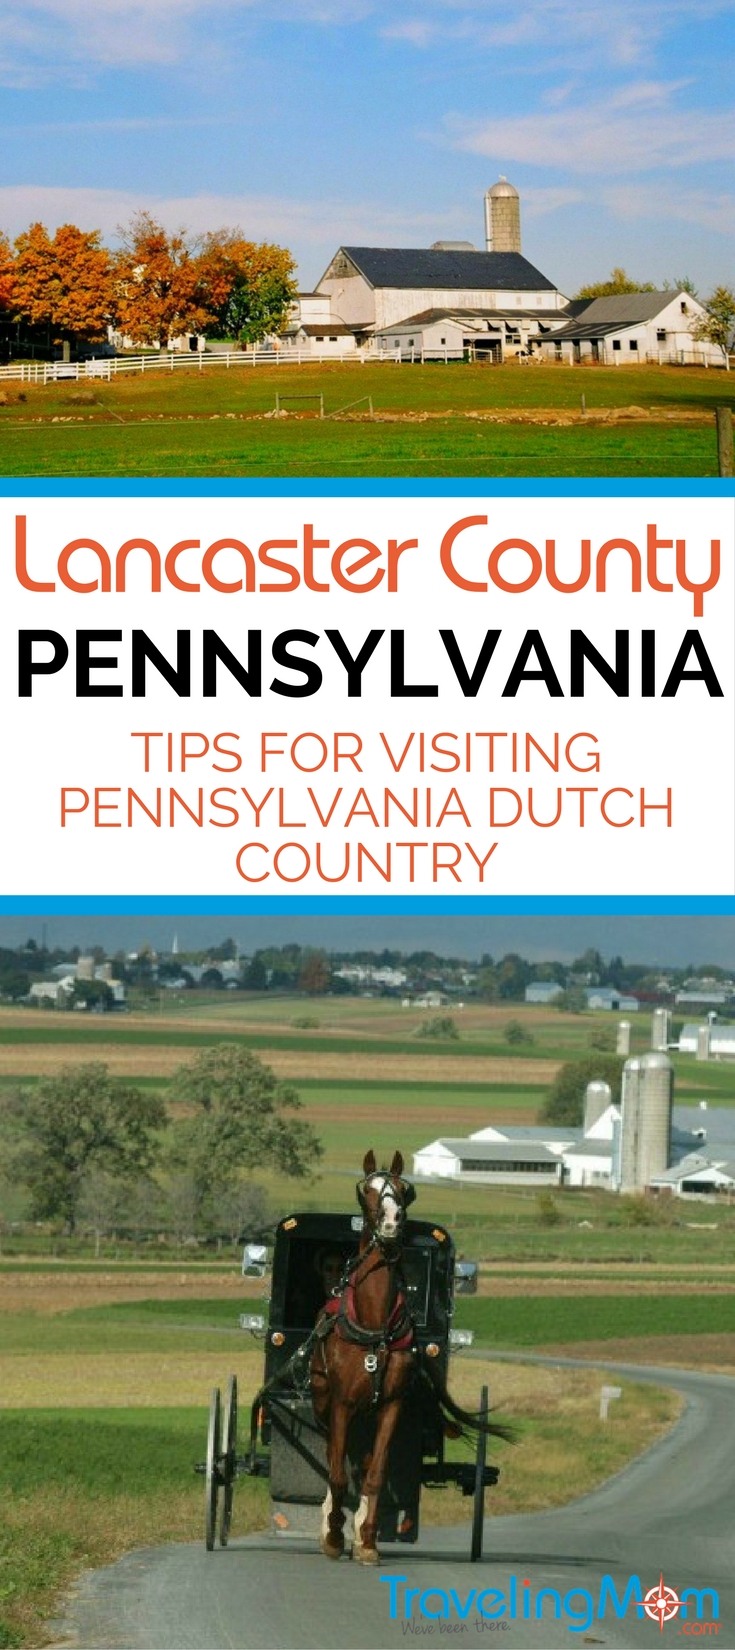 From farm to table dining to making memories that will last a lifetime, here's why you need to consider Lancaster County, PA, for your next multigen vacation!